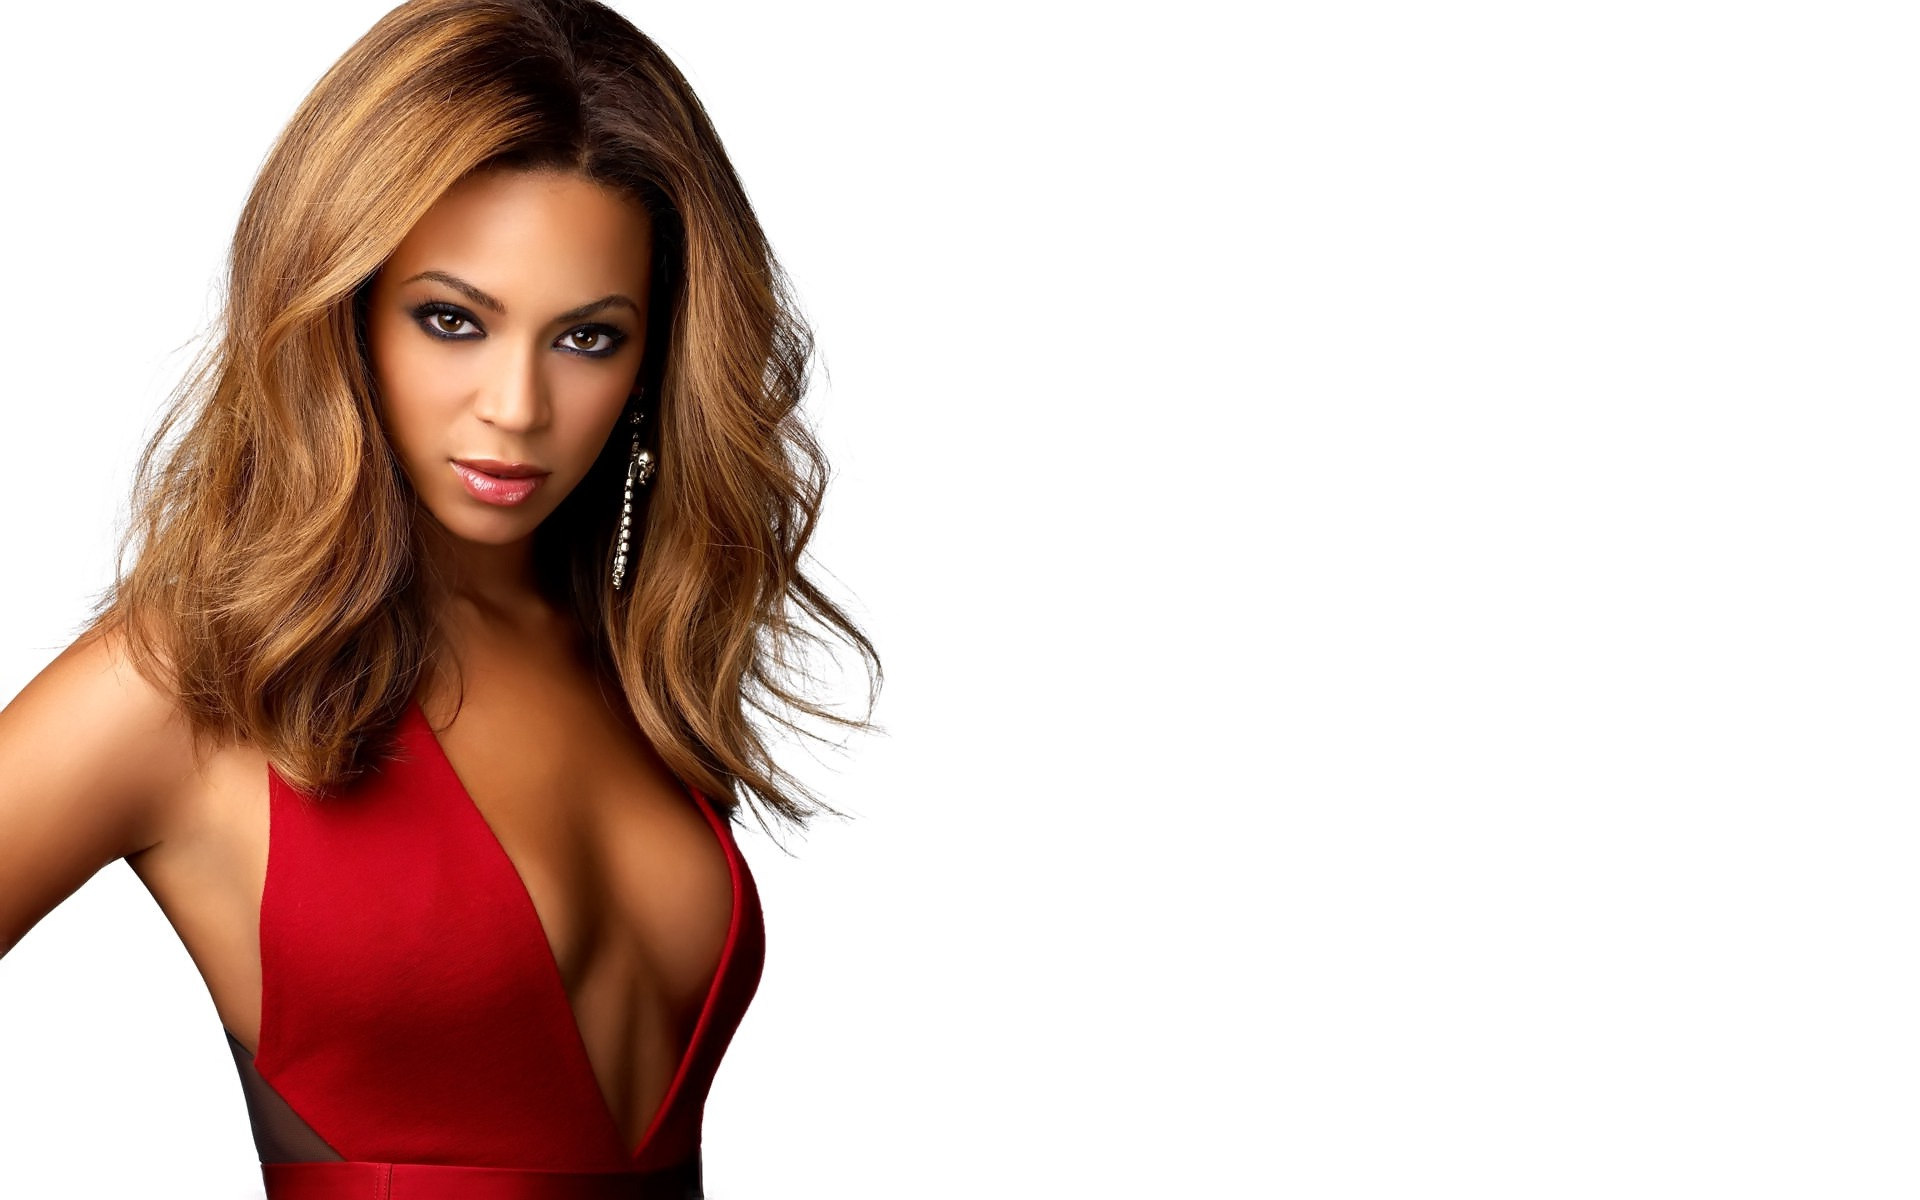 Beyonce Beautiful Wallpaper Beyonce Female Celebrities 1920x1200